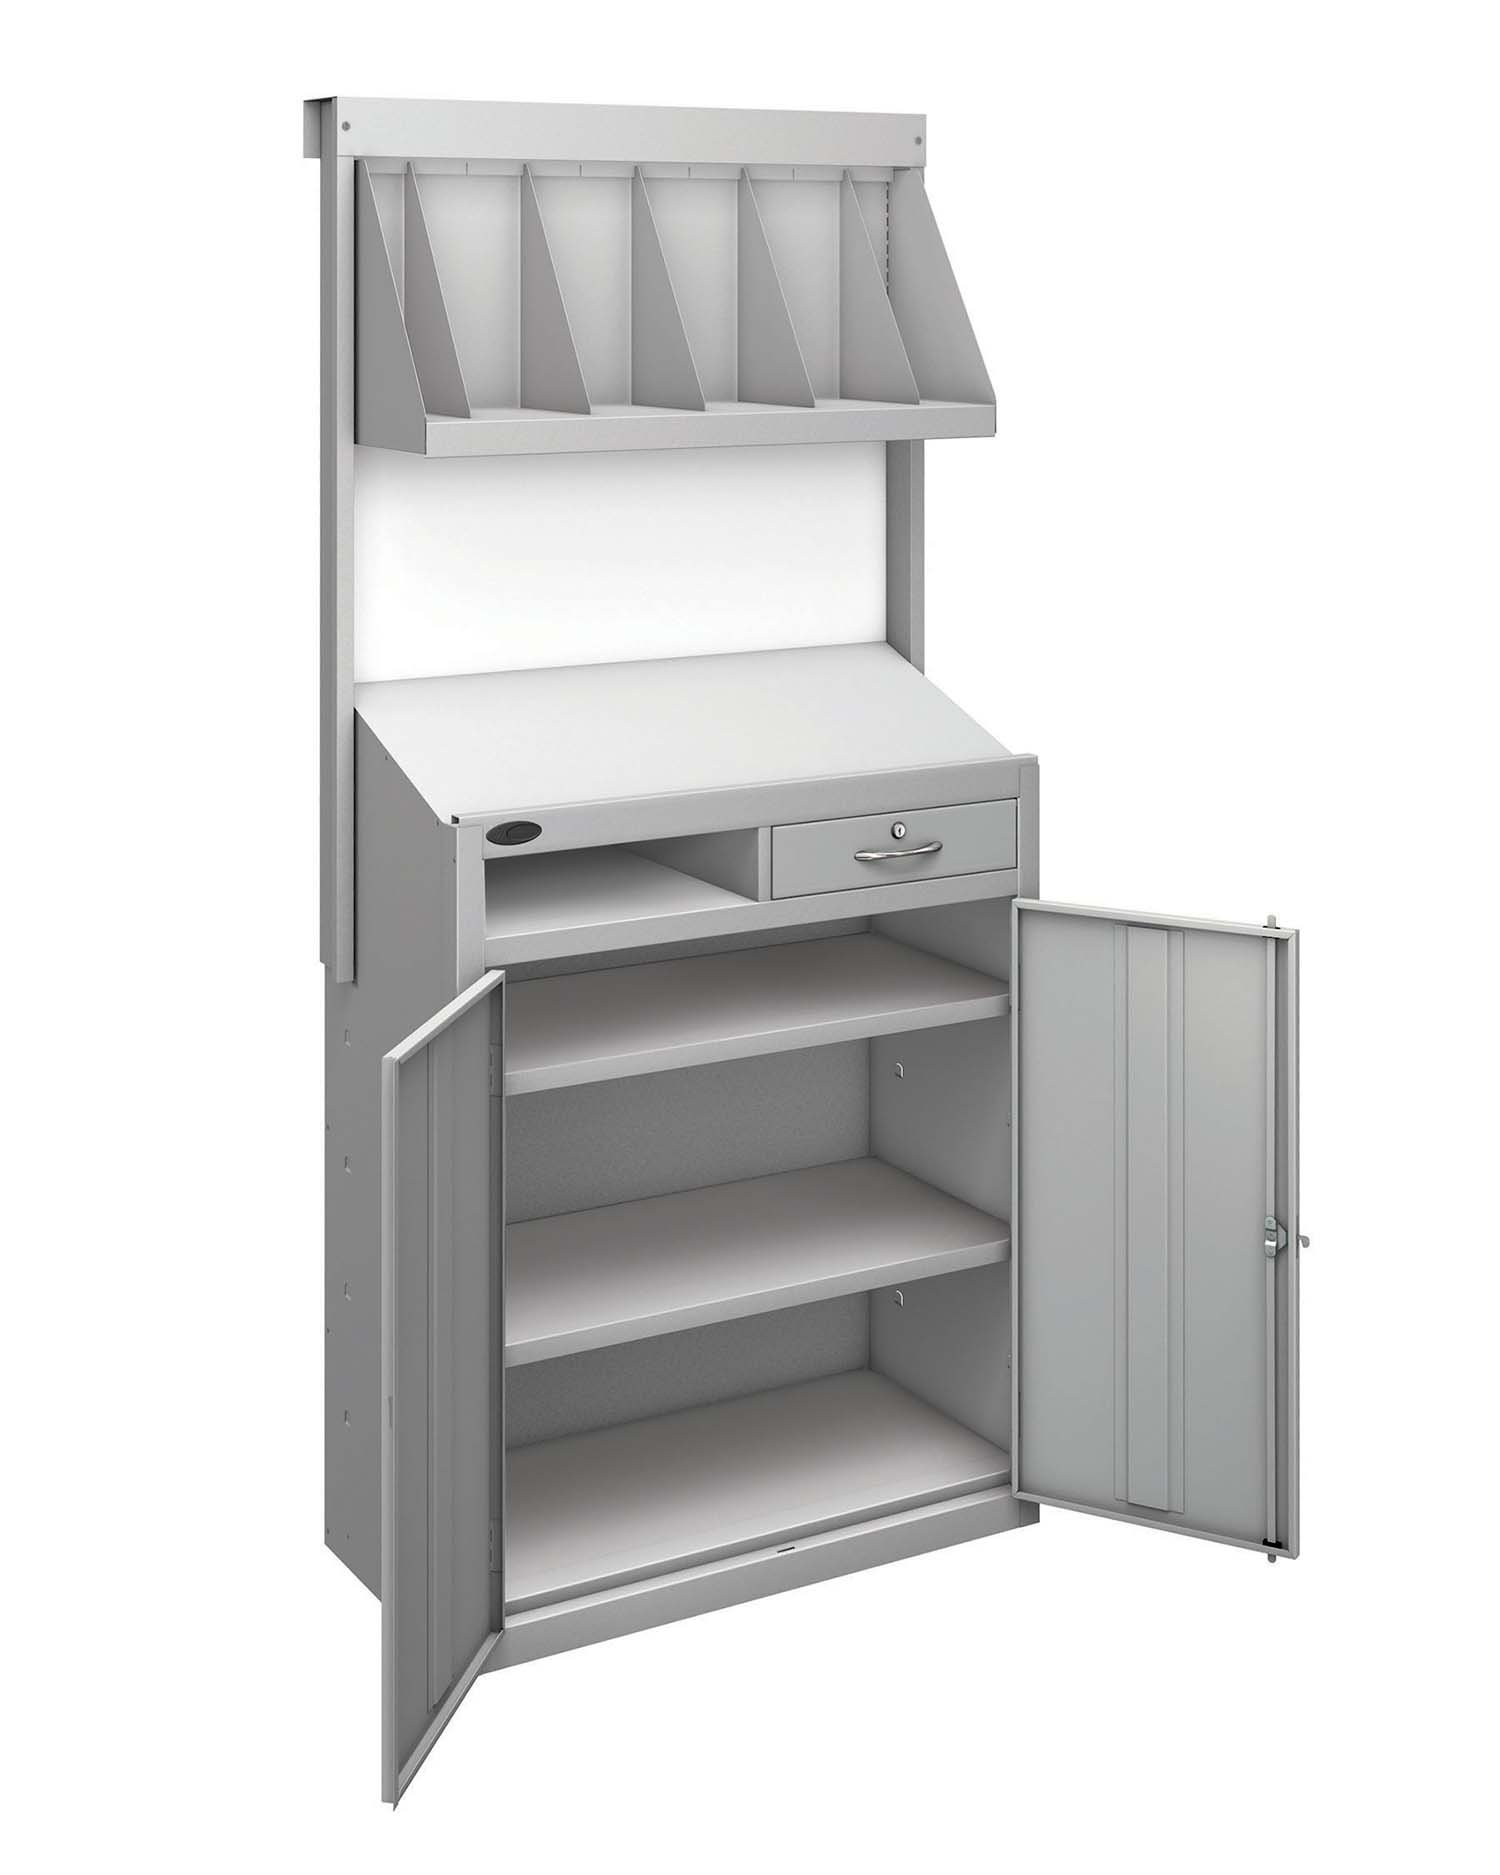 Probe workstation bookshelf silver